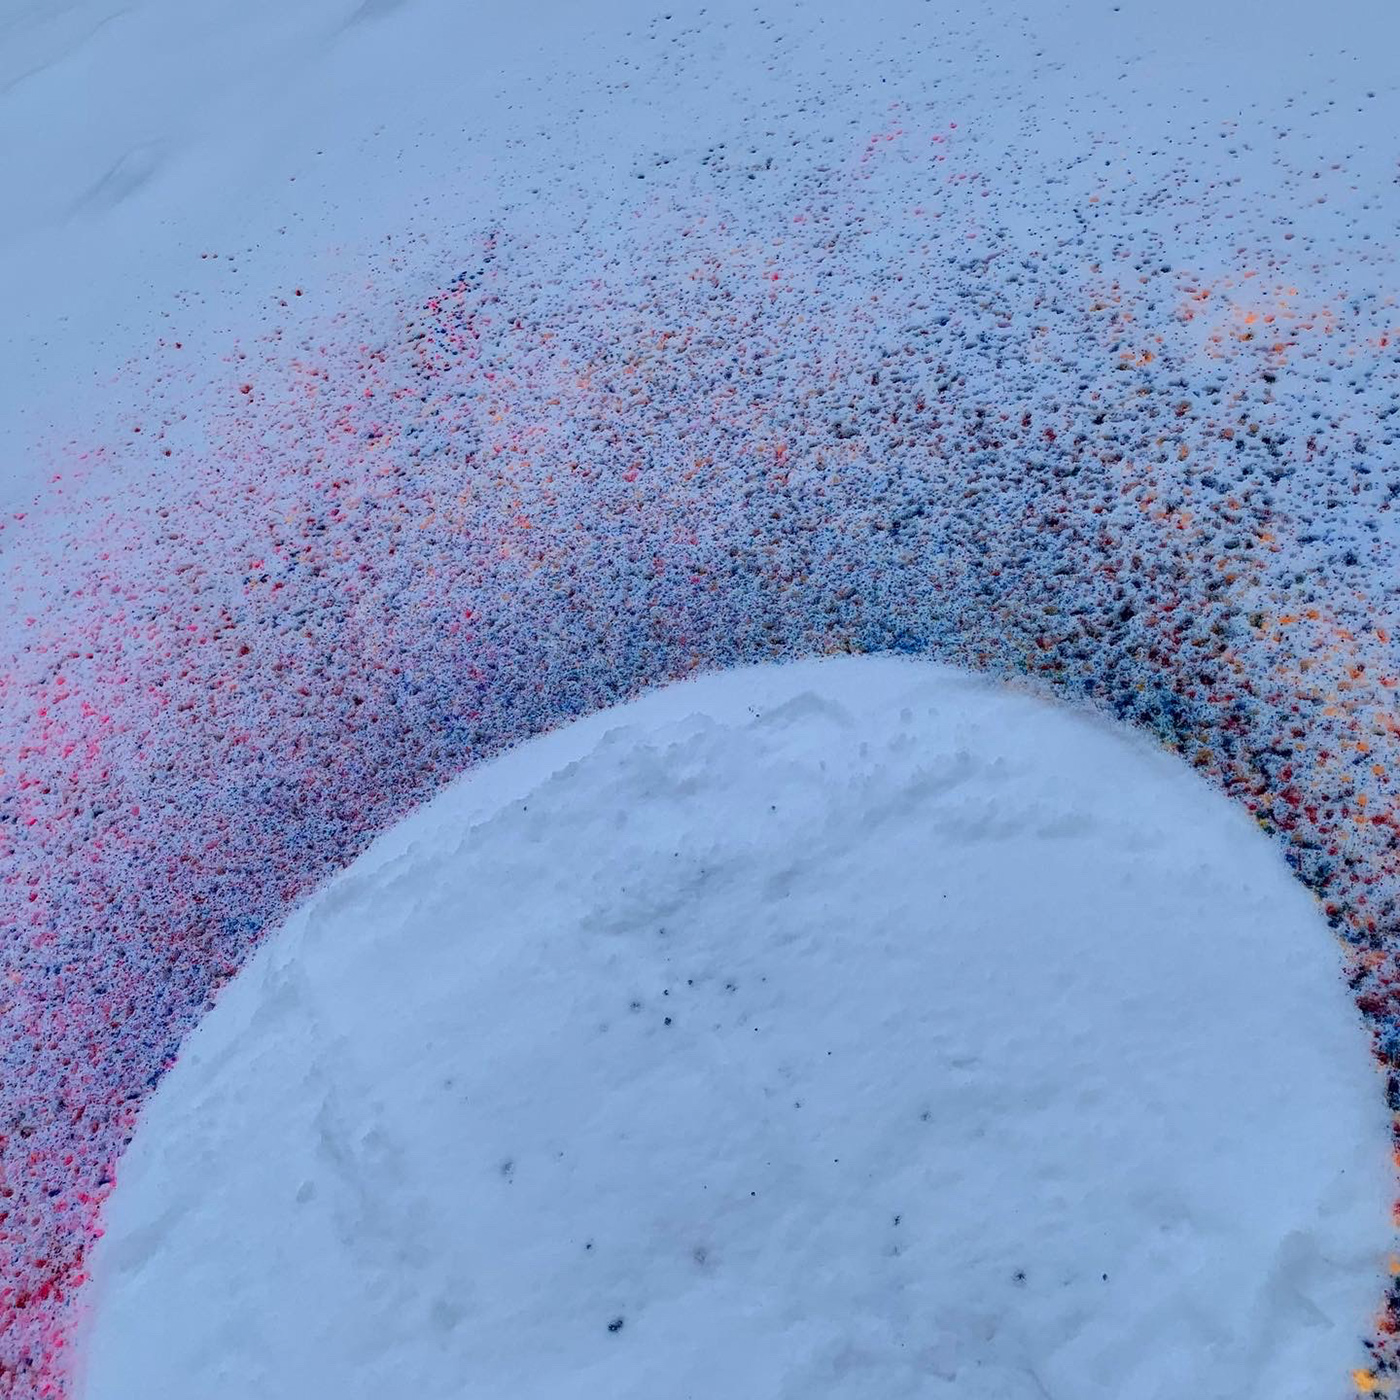 art arty circle colorful conceptual design dotted FINEART inspiration intervention making paints playing round snow spray temporal temporality time winter